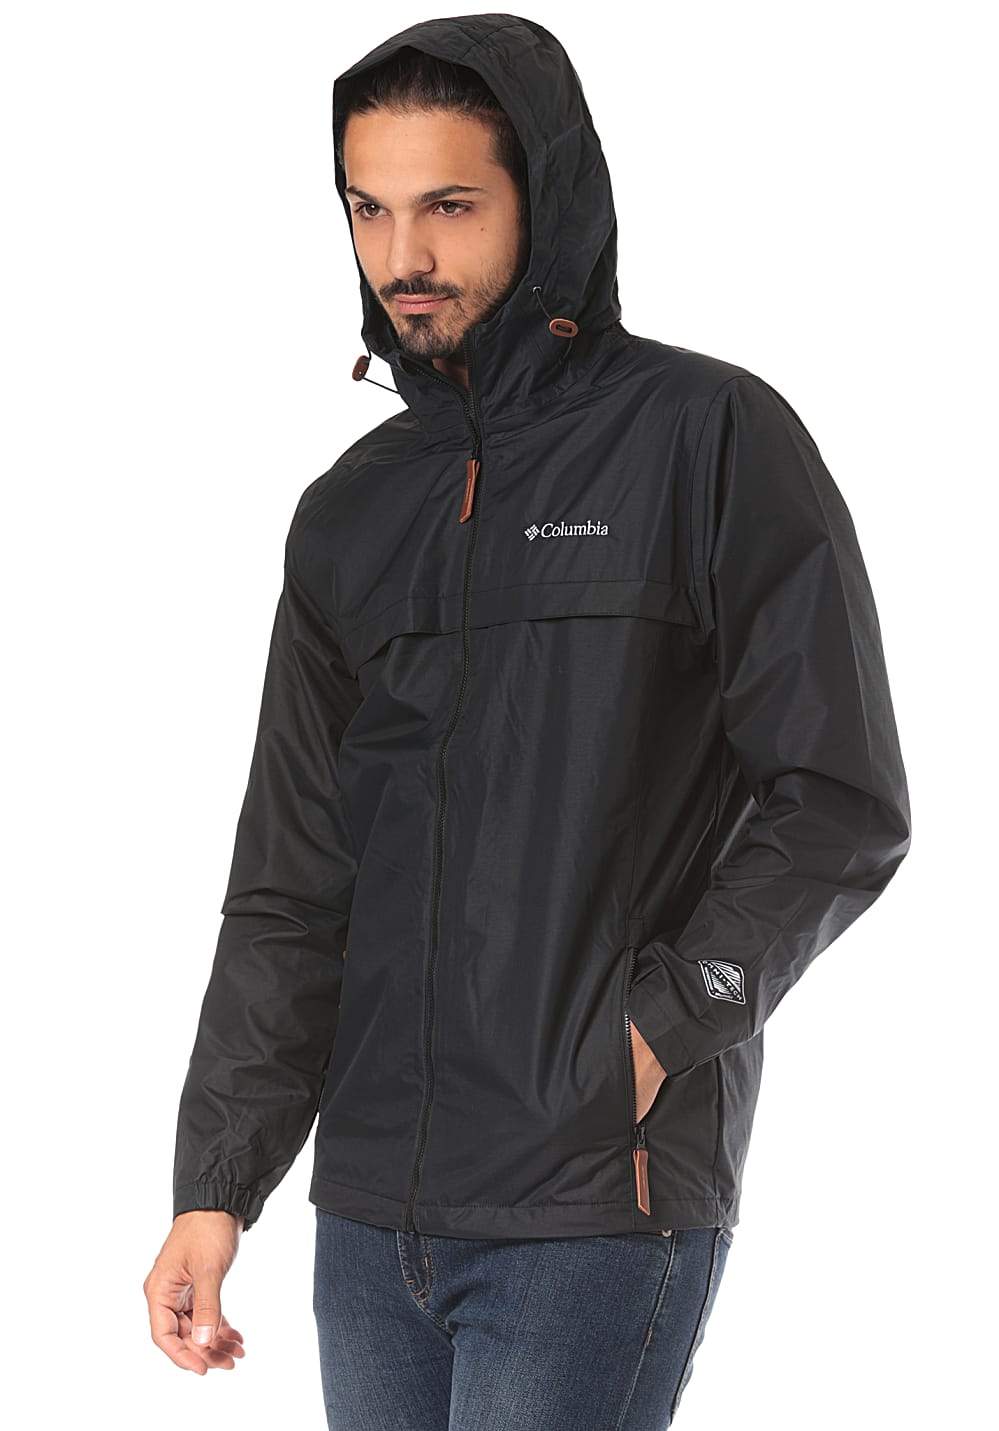 3cecf350e8 Columbia Jones Ridge - Outdoorjacke für Herren - Schwarz - Planet Sports